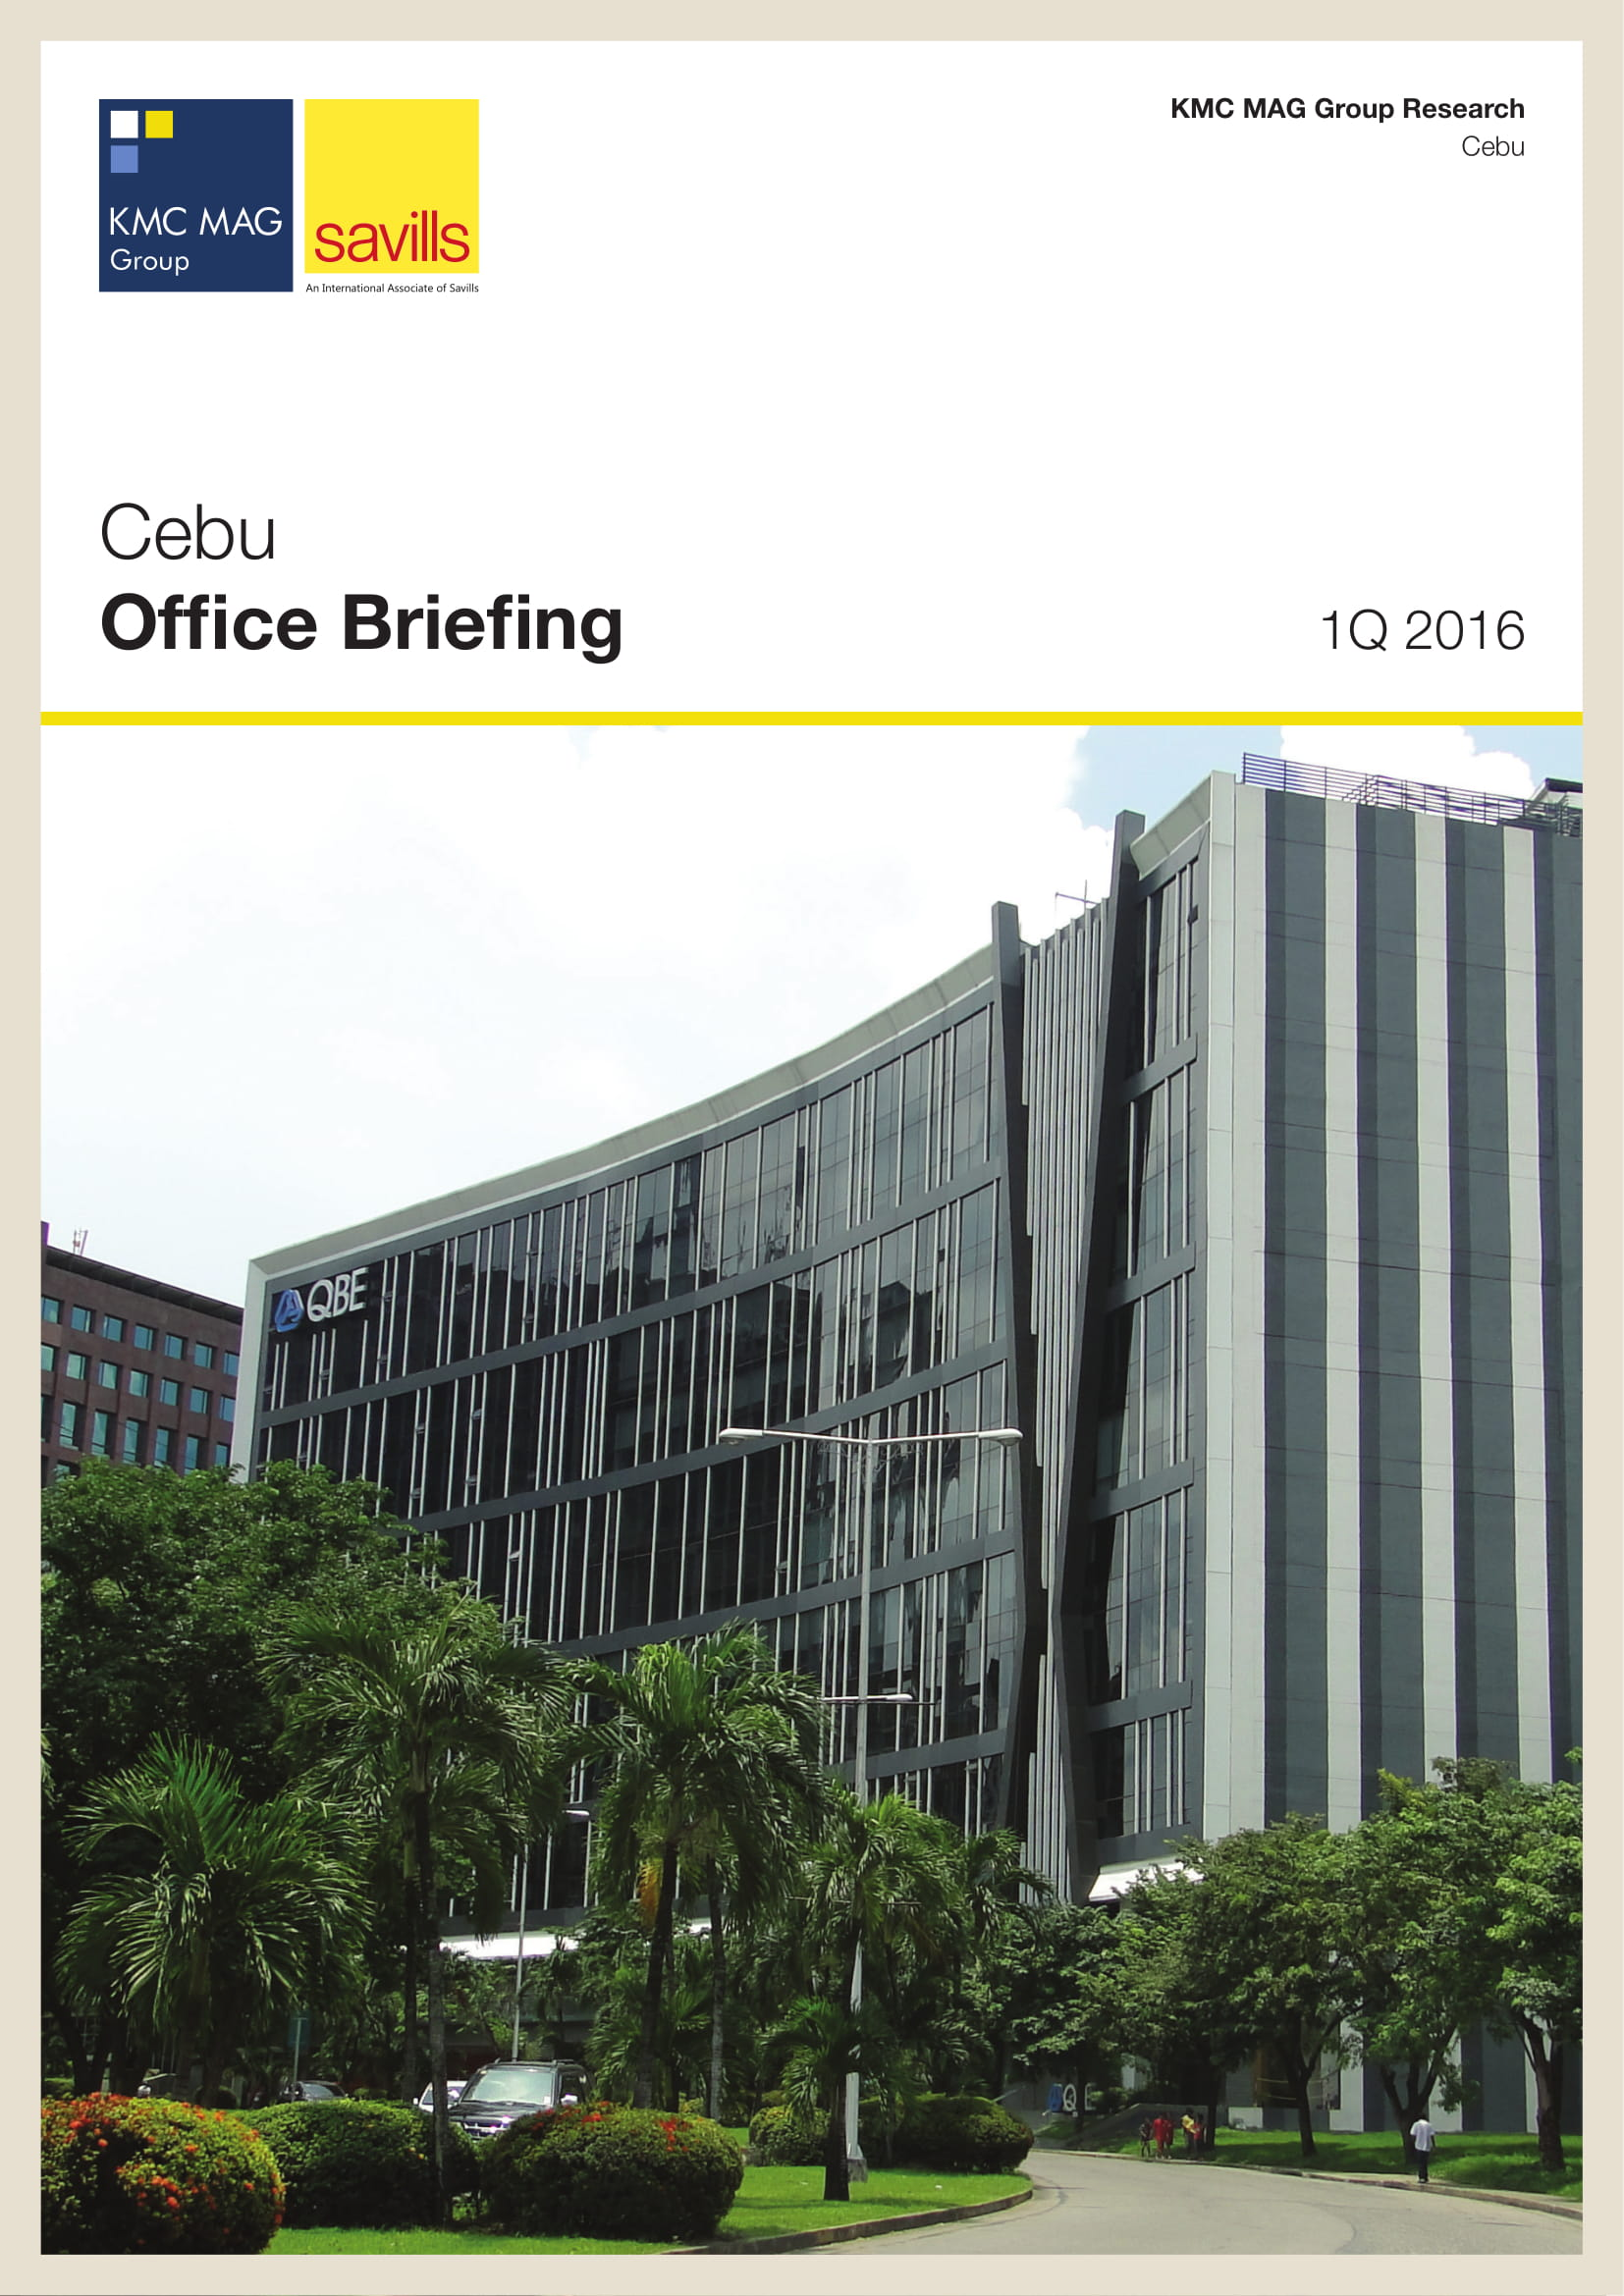 Cebu Office Briefing 1Q 2016